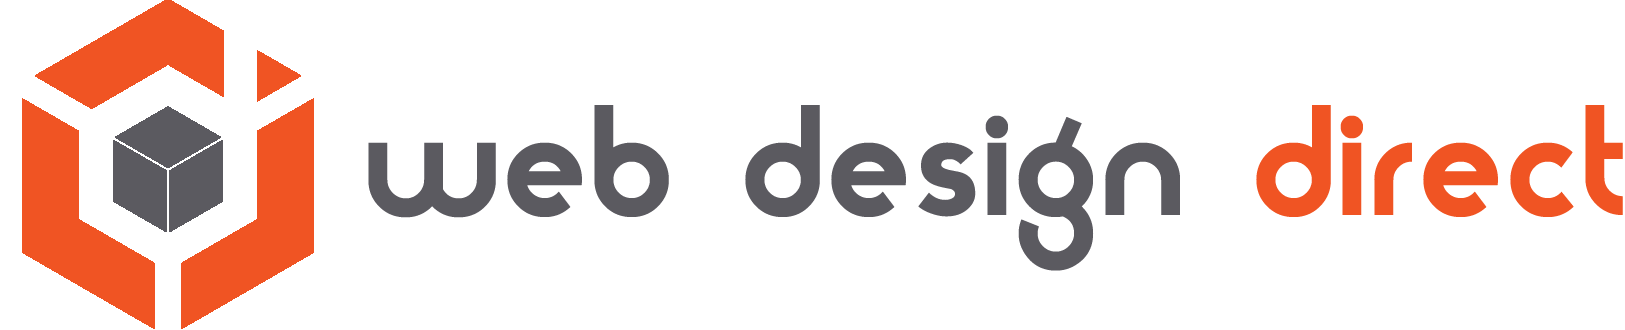 web-design-direct-logo